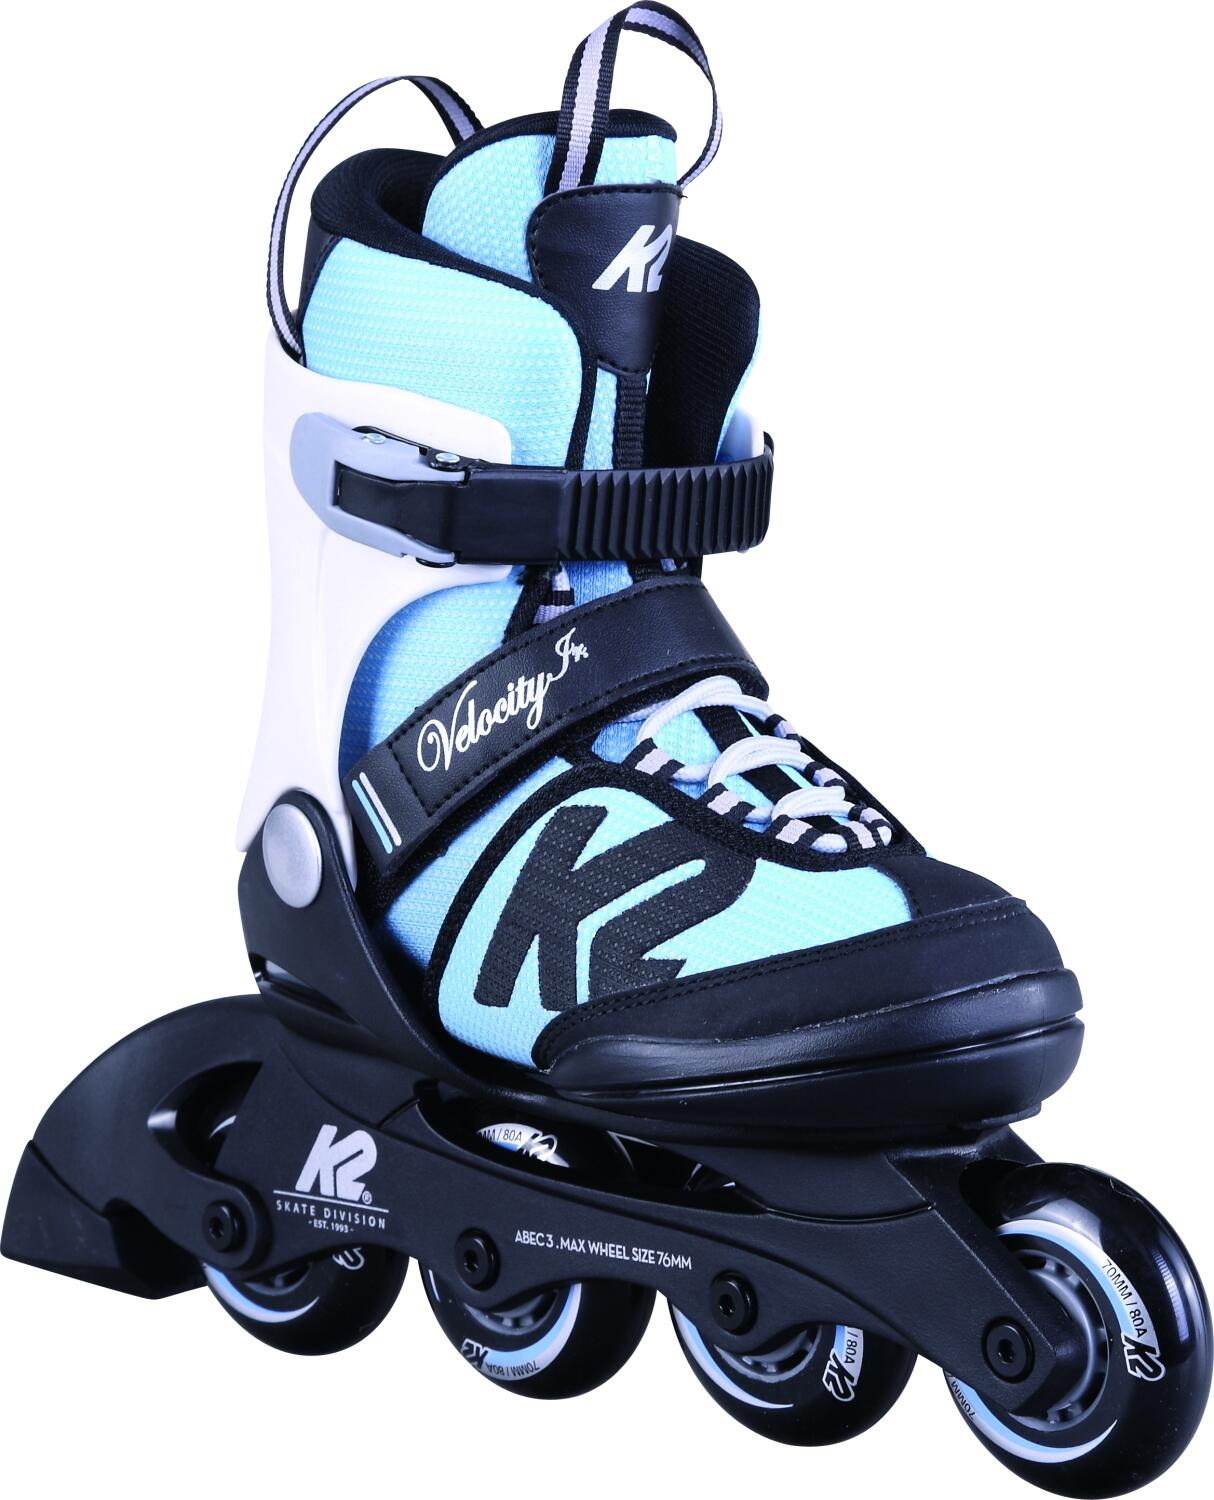 Inliner - K2 Velocity Junior Girls Inliner (Größe 35.0 40.0, 1 design) - Onlineshop